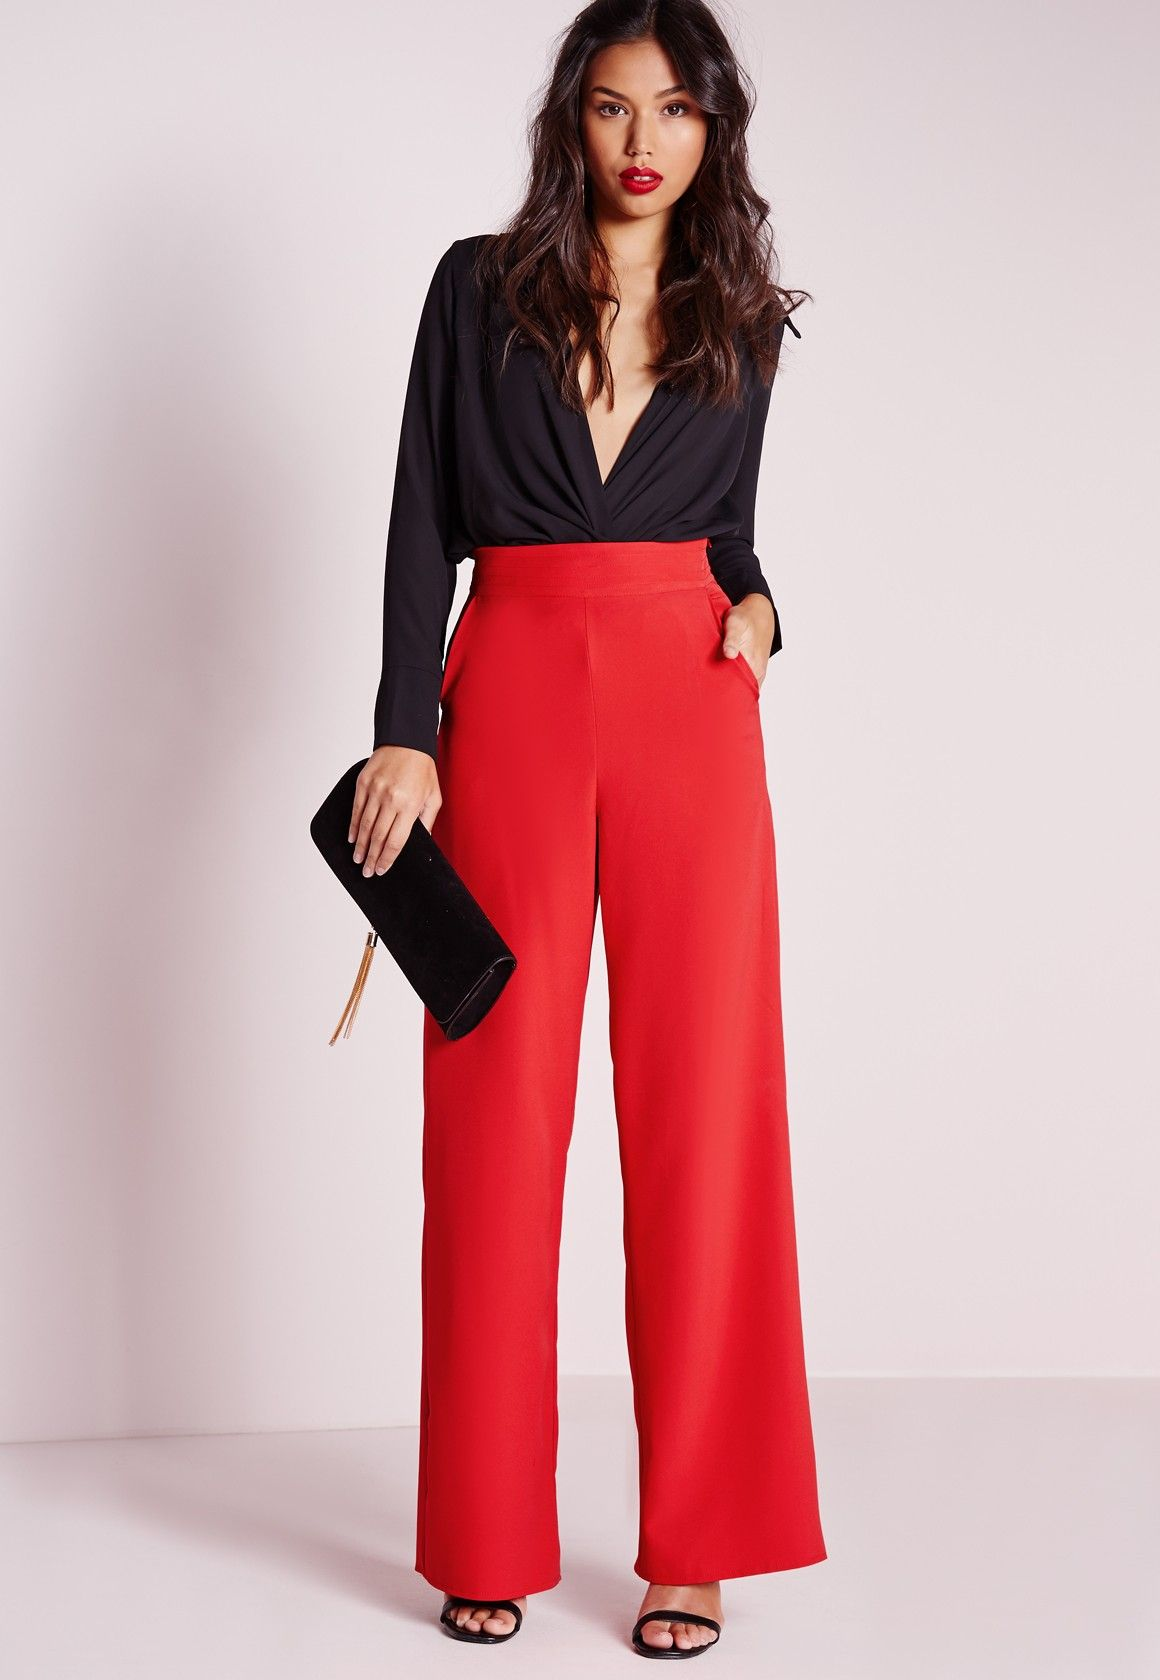 5ae3a3604d34 Missguided - High Waist Wide Leg Trousers Red | Things to Wear in ...